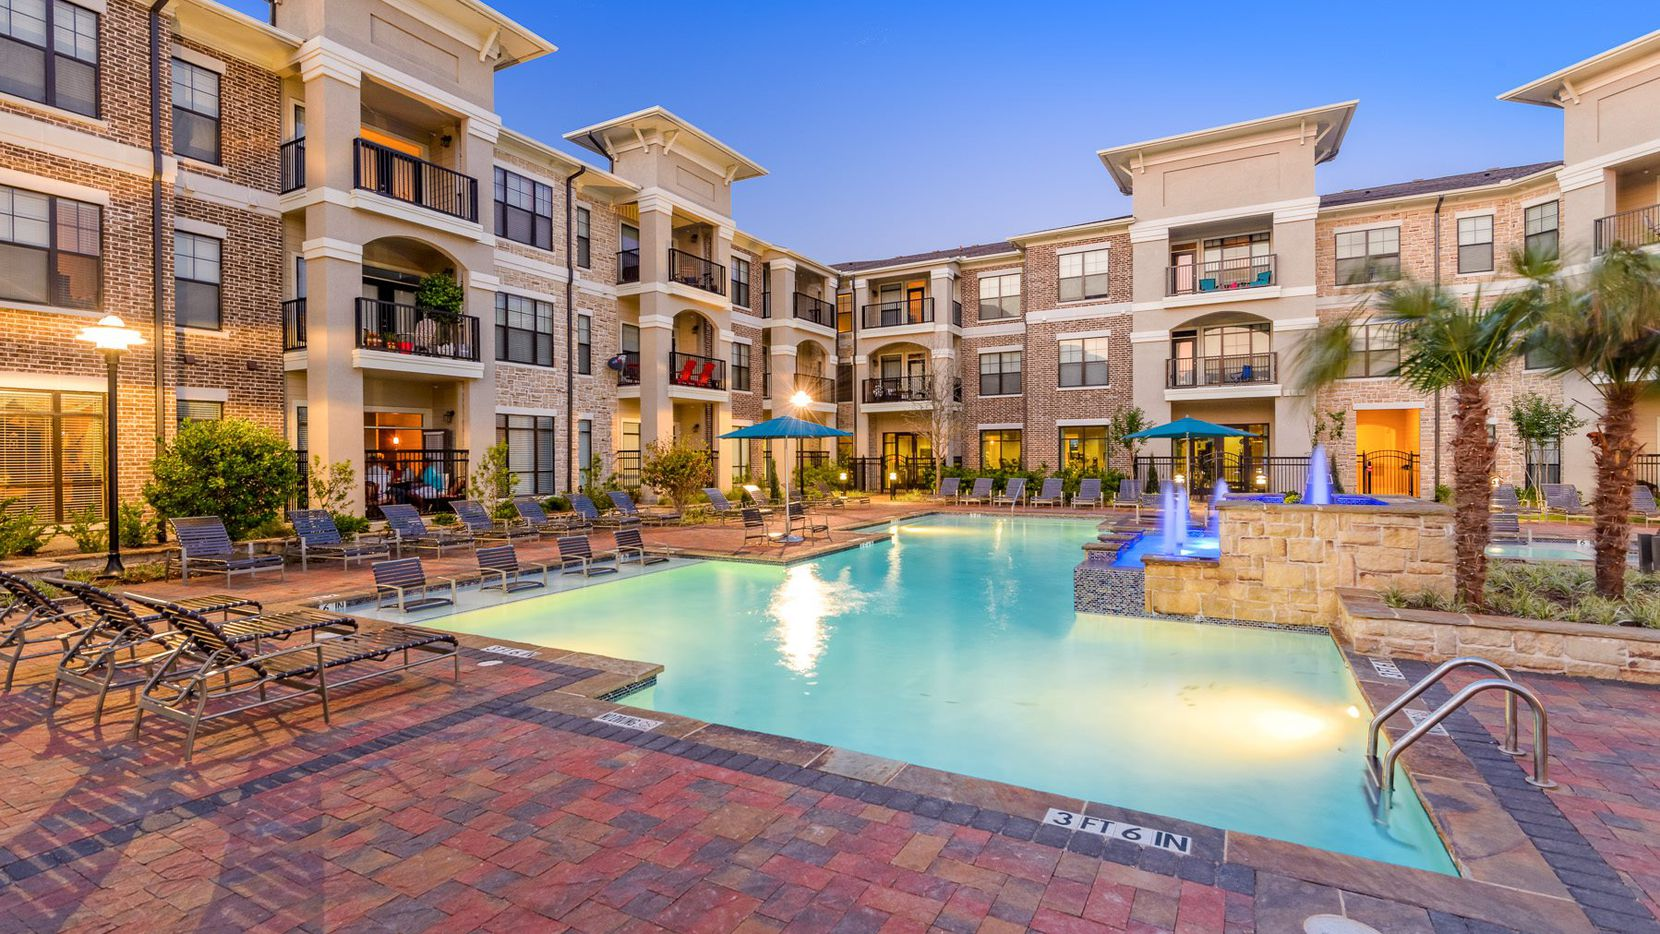 Weinstein Properties bought the Century Lake Forest apartments in McKinney.